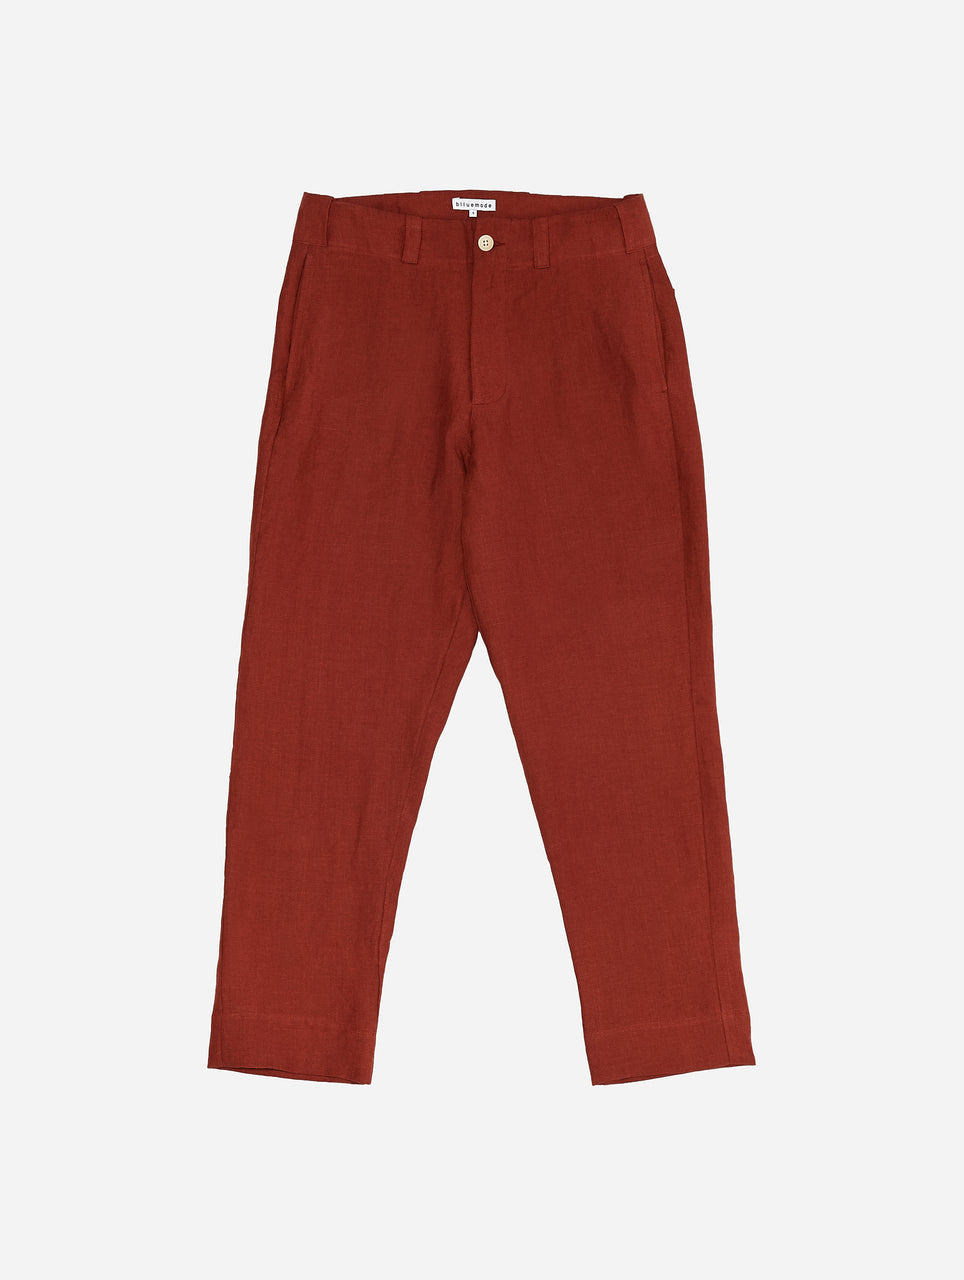 Baseball Pant in Rust Linen